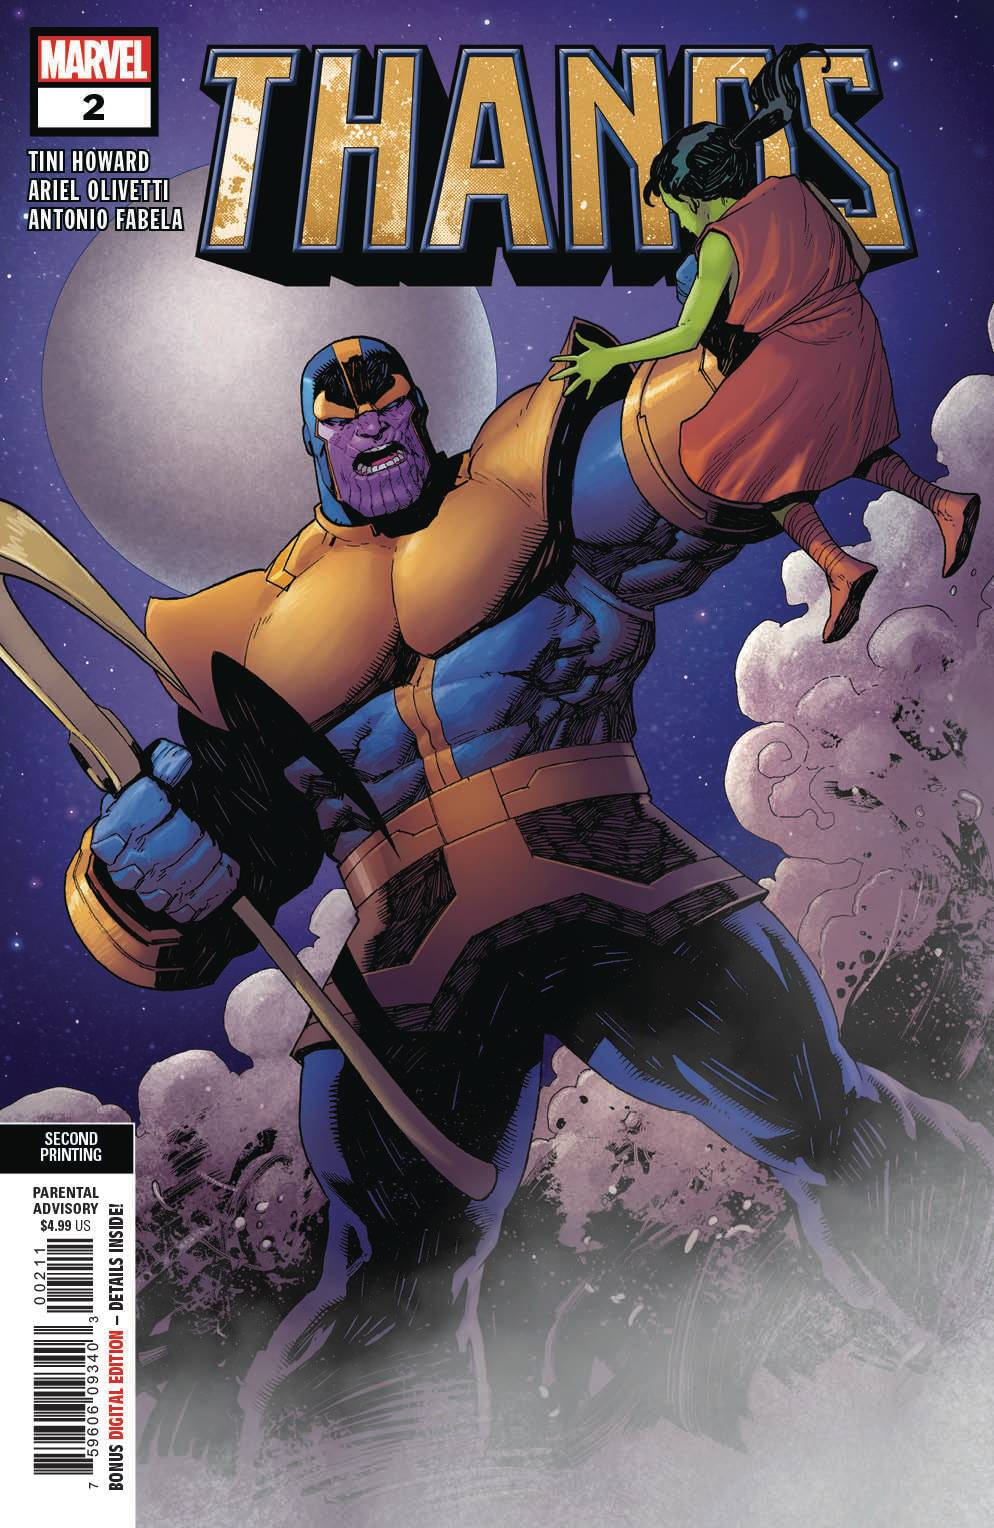 THANOS #2 (OF 6) 2ND PTG OLIVETTI VARIANT  07/03/19 FOC 06/10/19